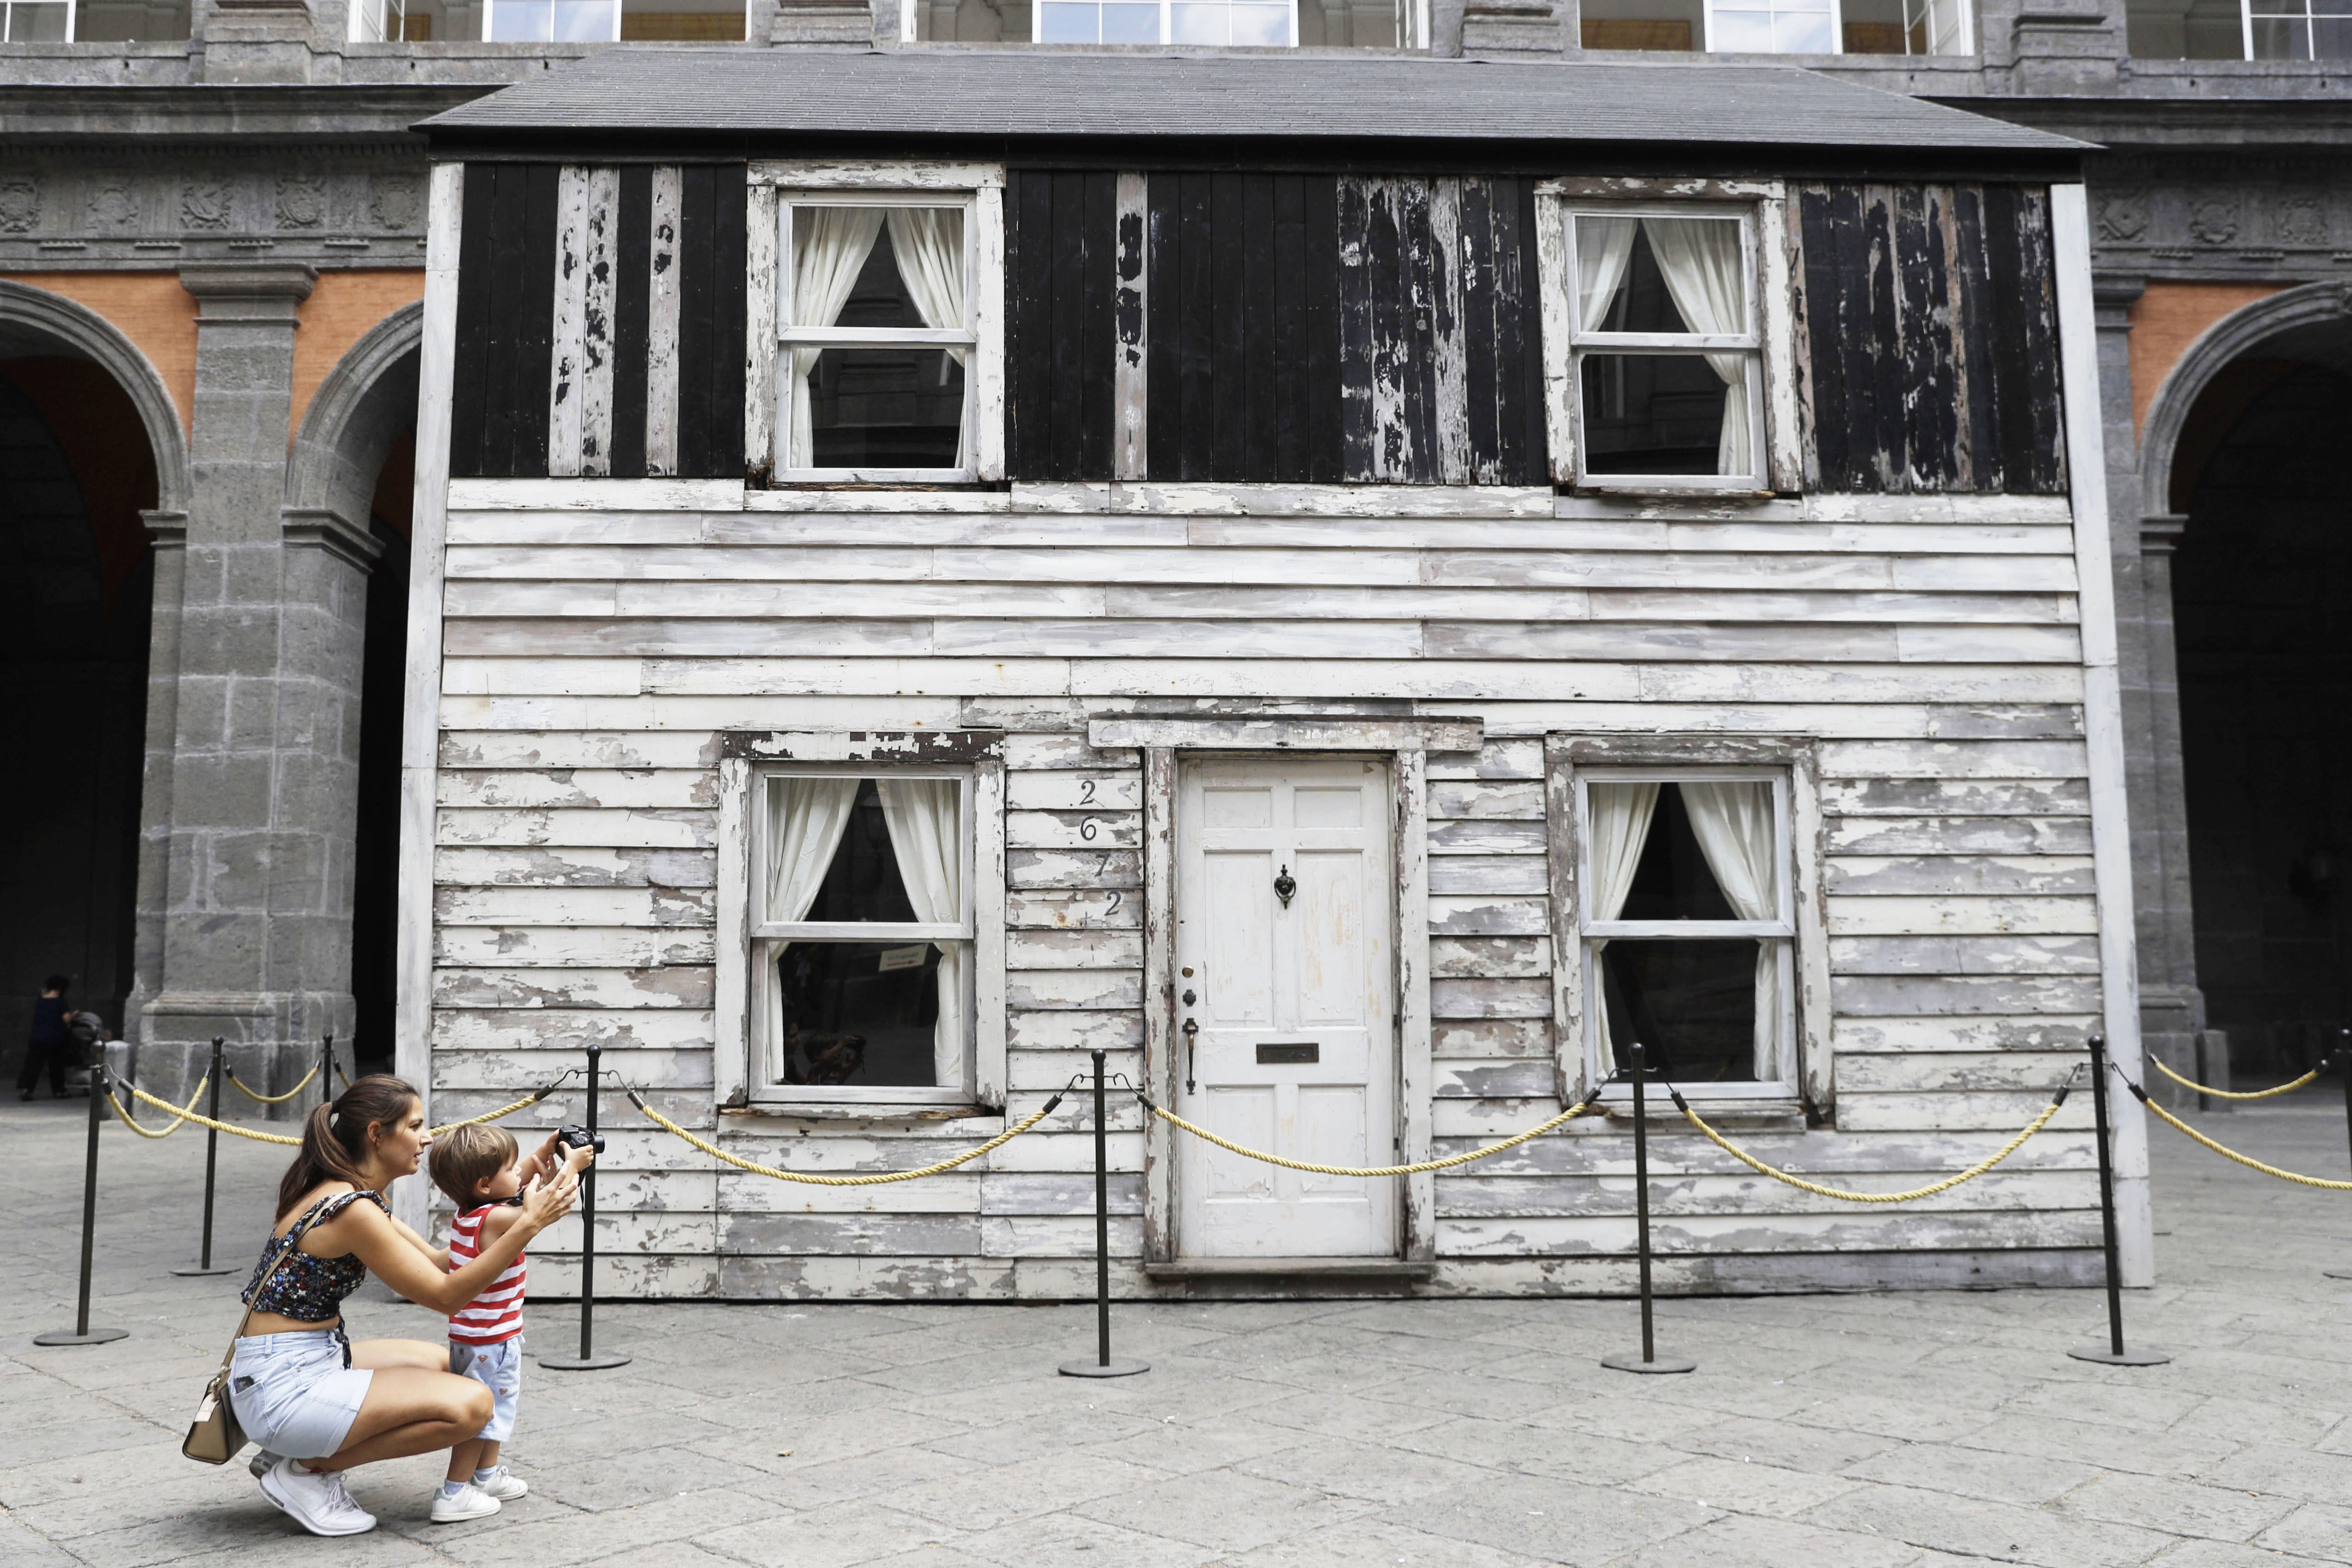 Alice Ridolfi, from Verona, helps her two years old son Leone take pictures of the house of U.S. civil rights campaigner Rosa Parks, rebuilt by artist Ryan Mendoza for public display, in Naples, Italy, Tuesday, Sept. 15, 2020. The rundown, paint-chipped Detroit house where Parks took refuge after her famous bus boycott is going on display in a setting that couldn't be more incongruous: the imposing central courtyard of the 18th century Royal Palace. (AP Photo/Gregorio Borgia)